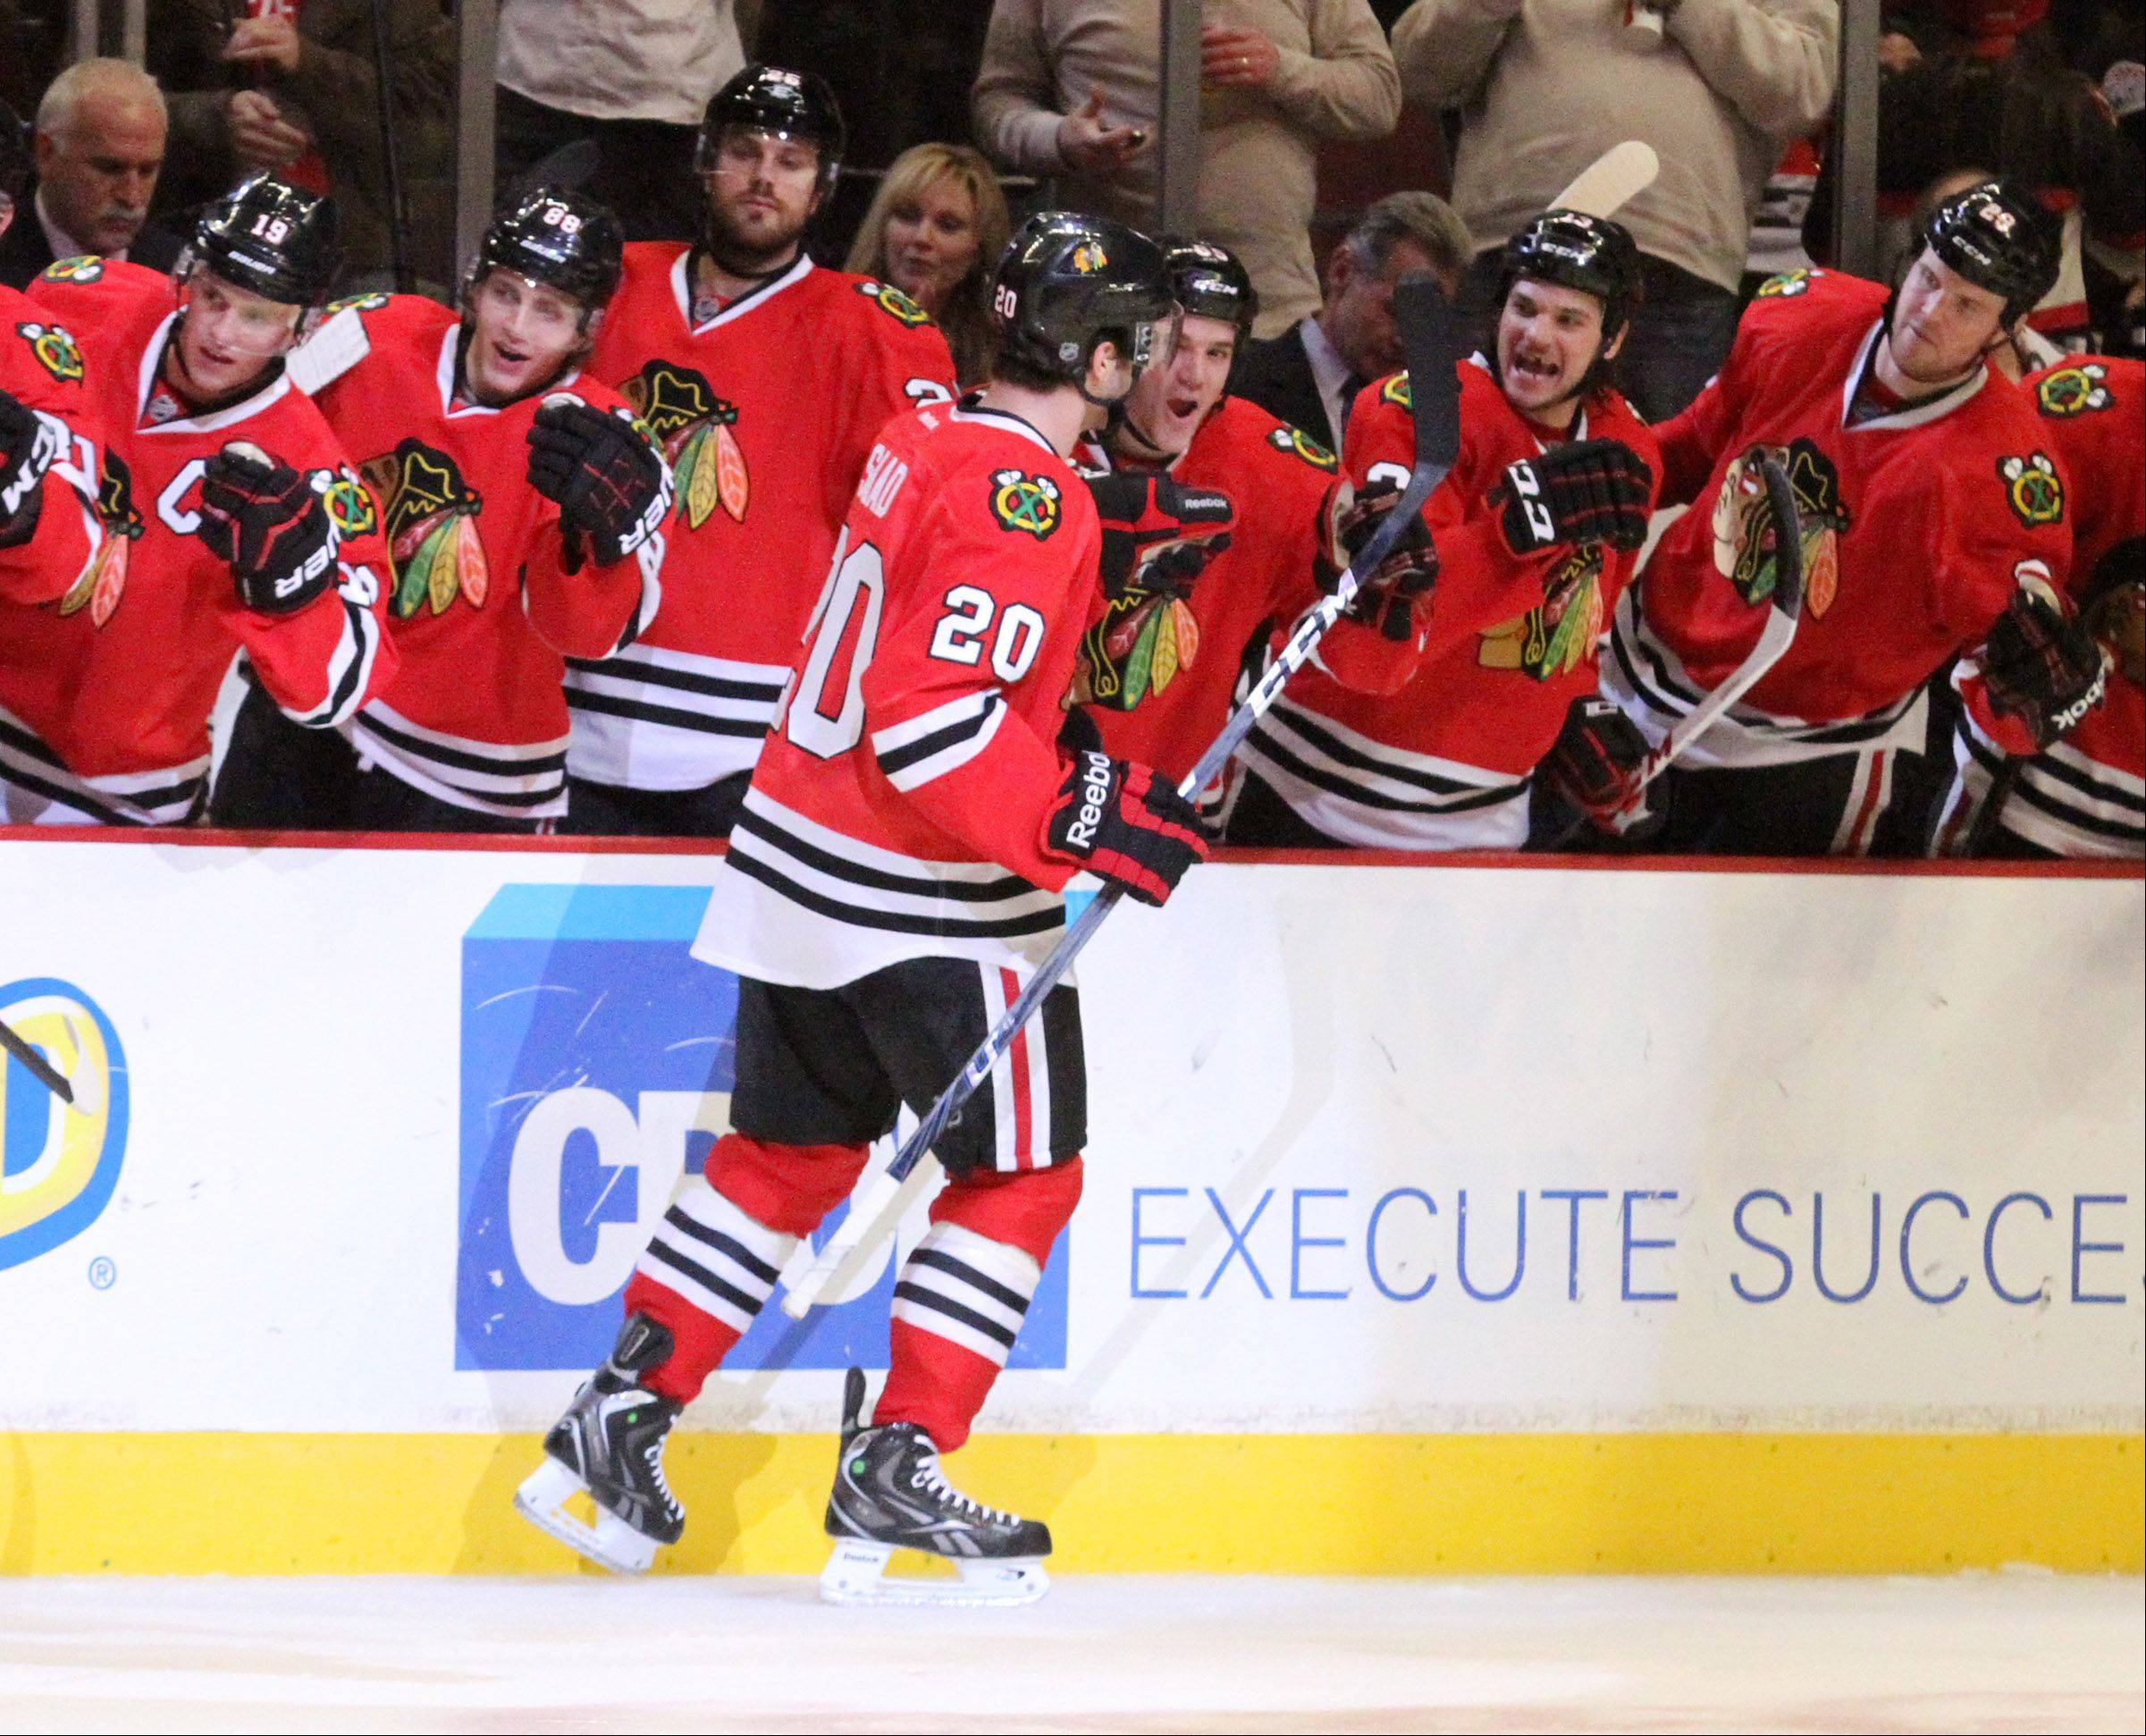 Hawks enter record book with win over Sharks